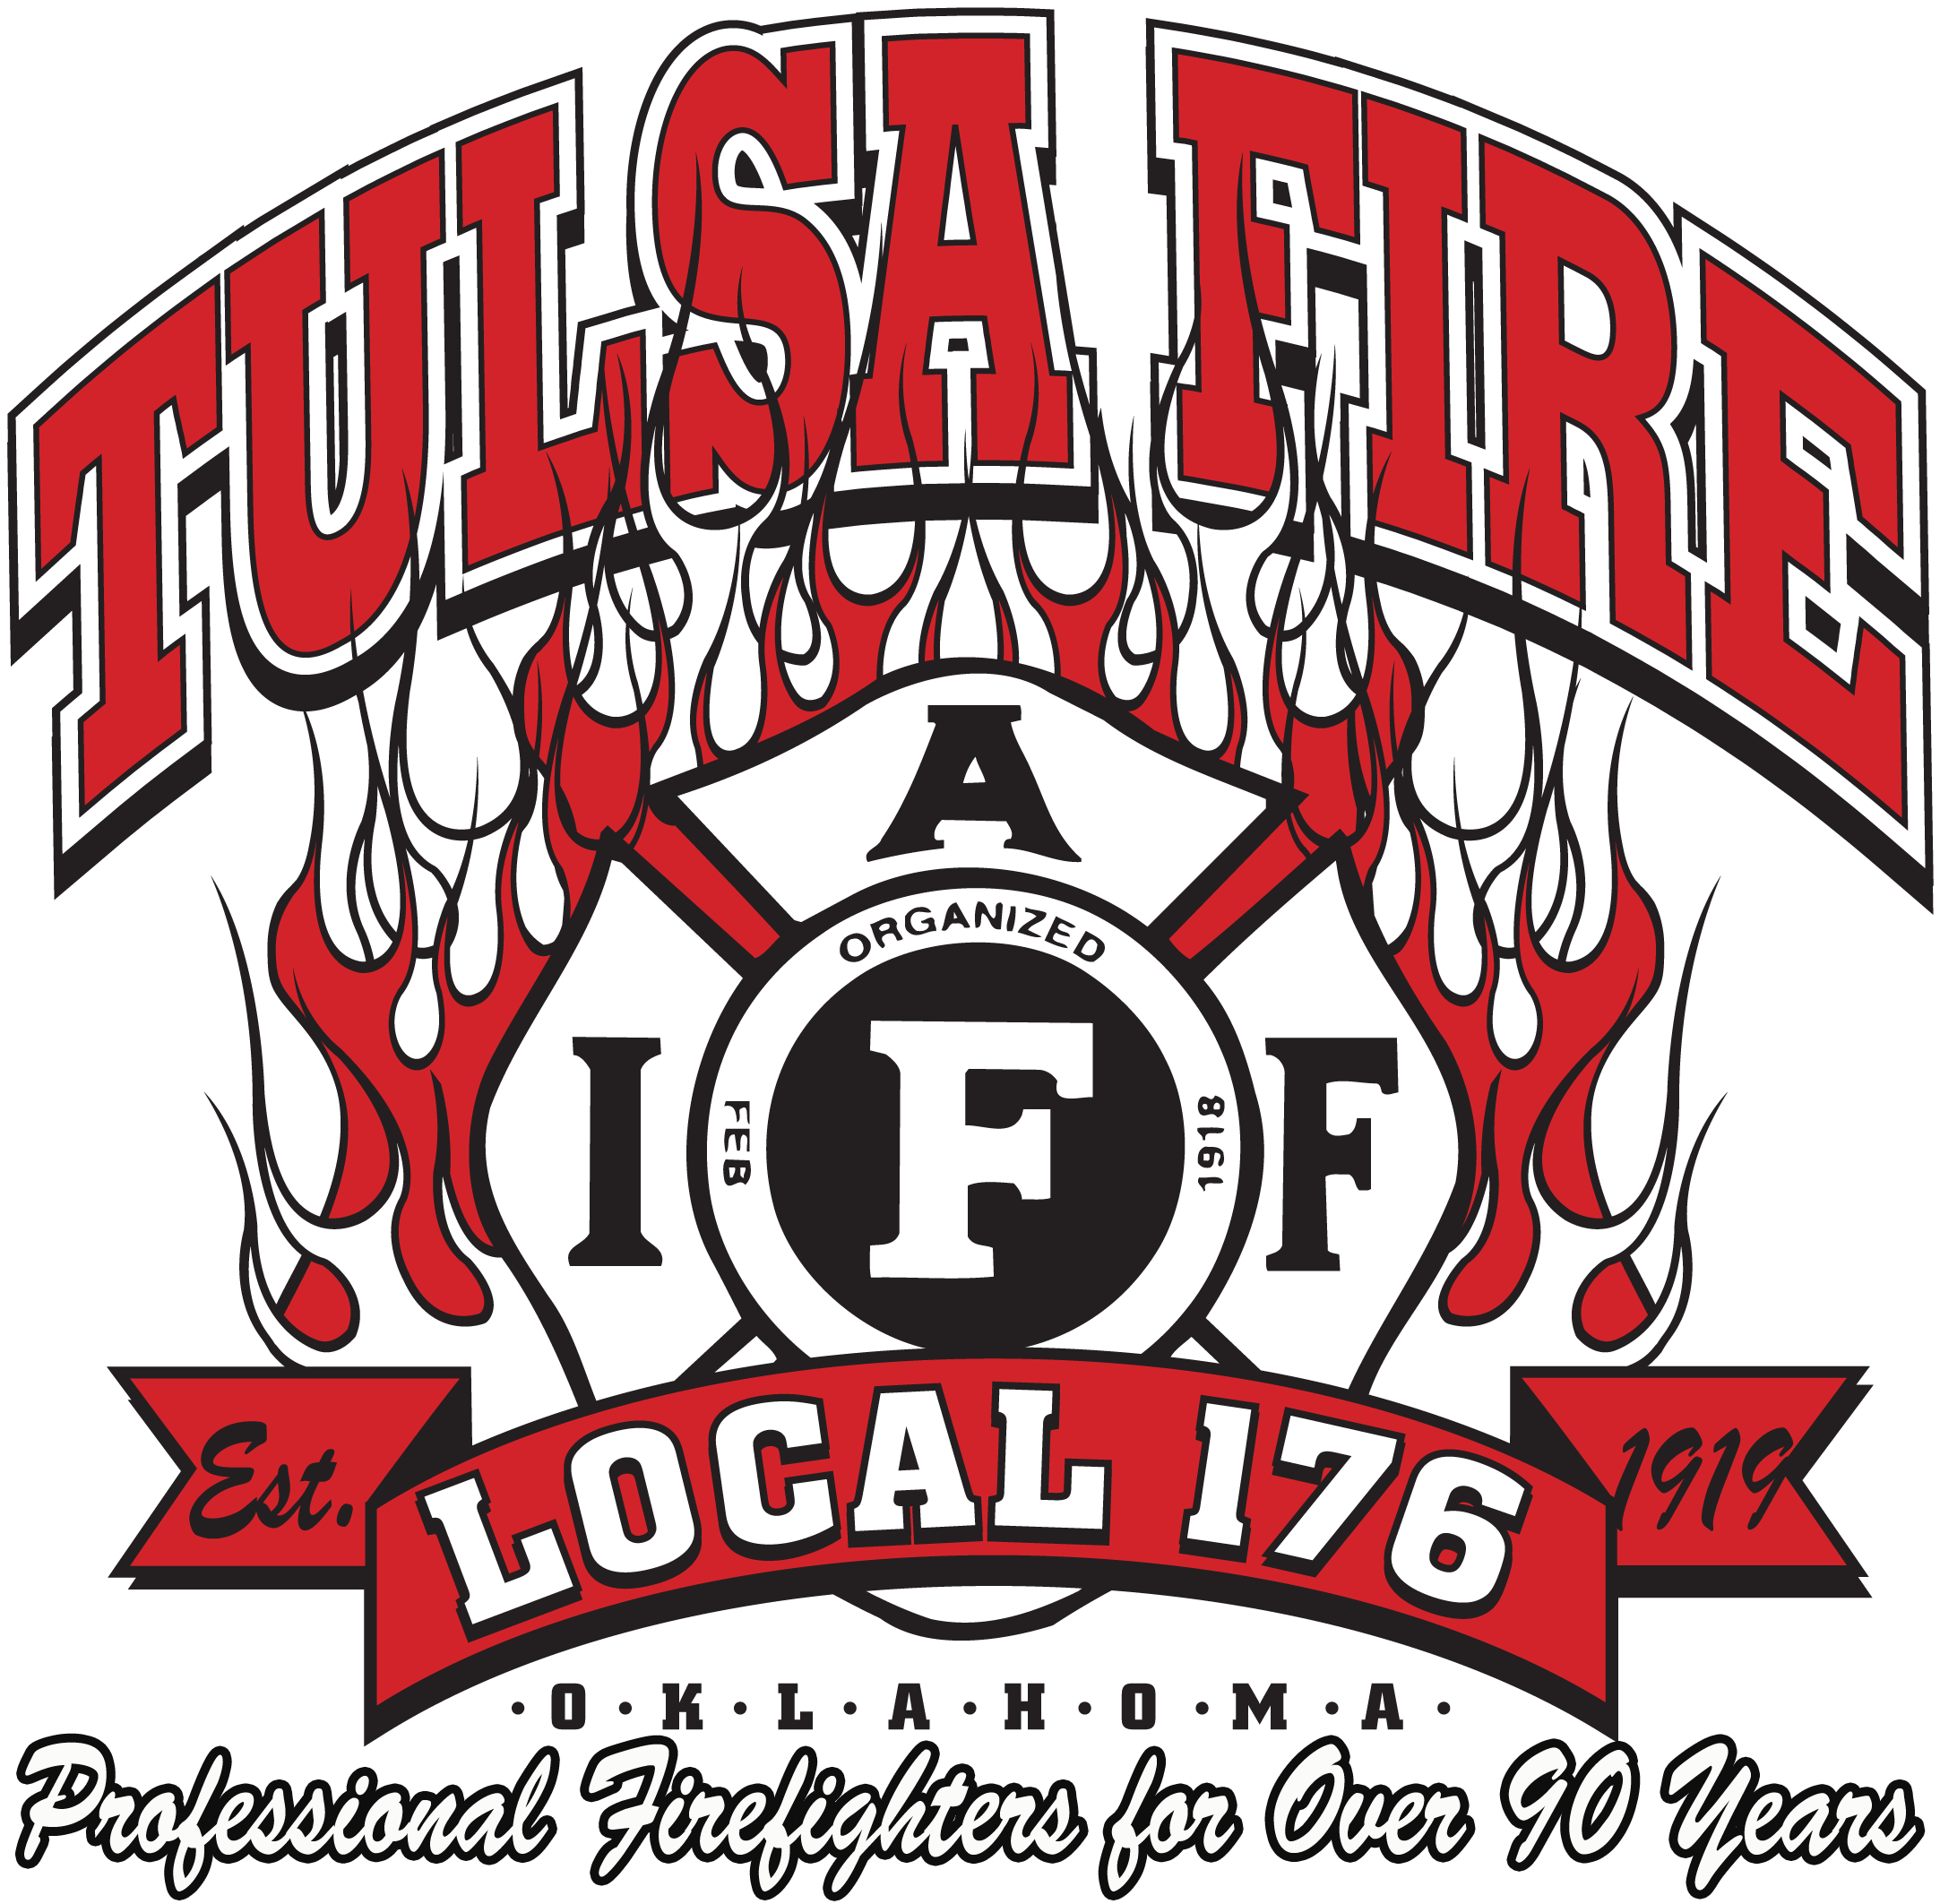 TULSA FIRE FIGHTERS